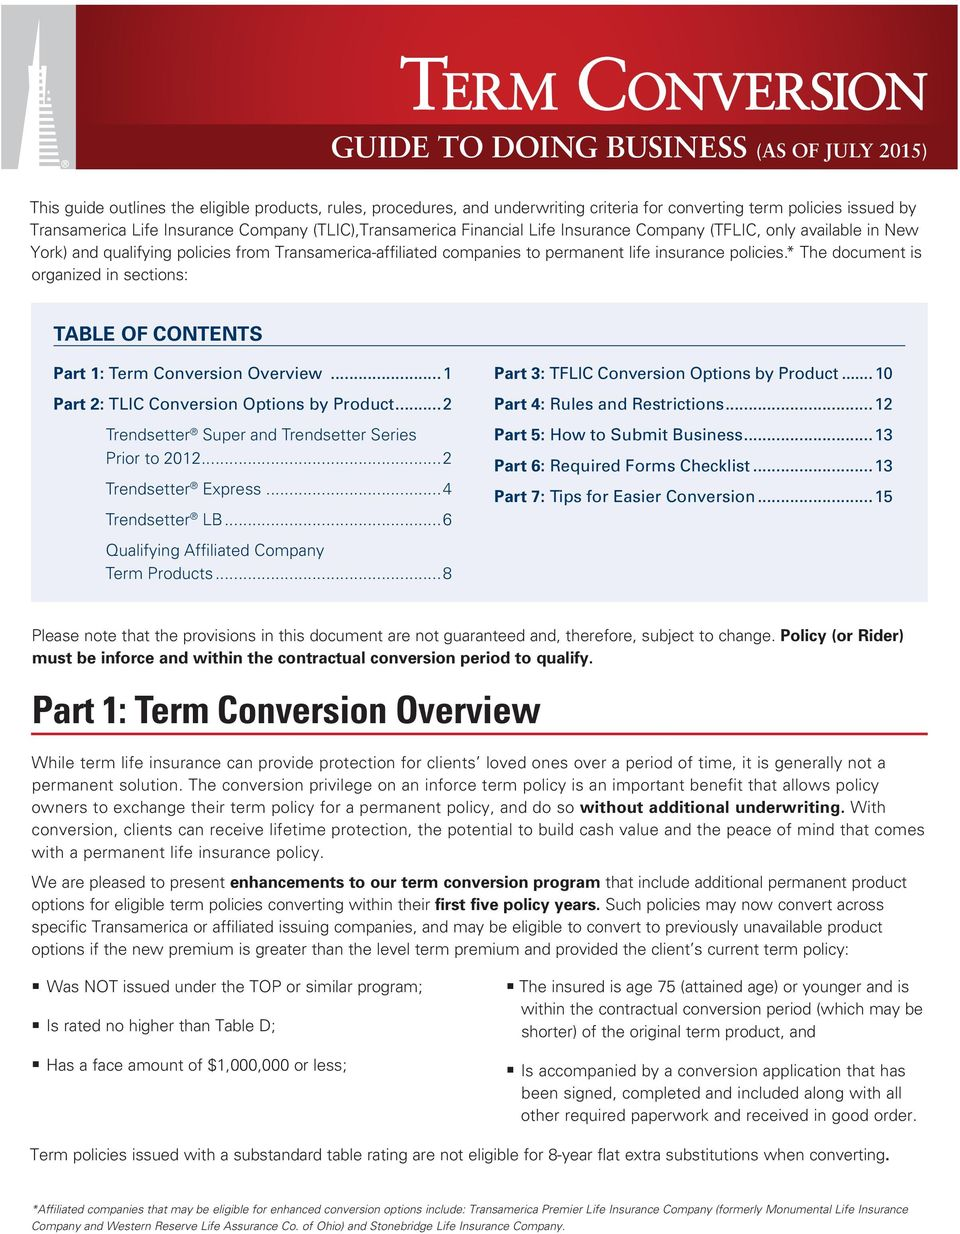 insurance policies.* The document is organized in sections: TABLE OF CONTENTS Part 1: Term Conversion Overview...1 Part 2: TLIC Conversion Options by Product.